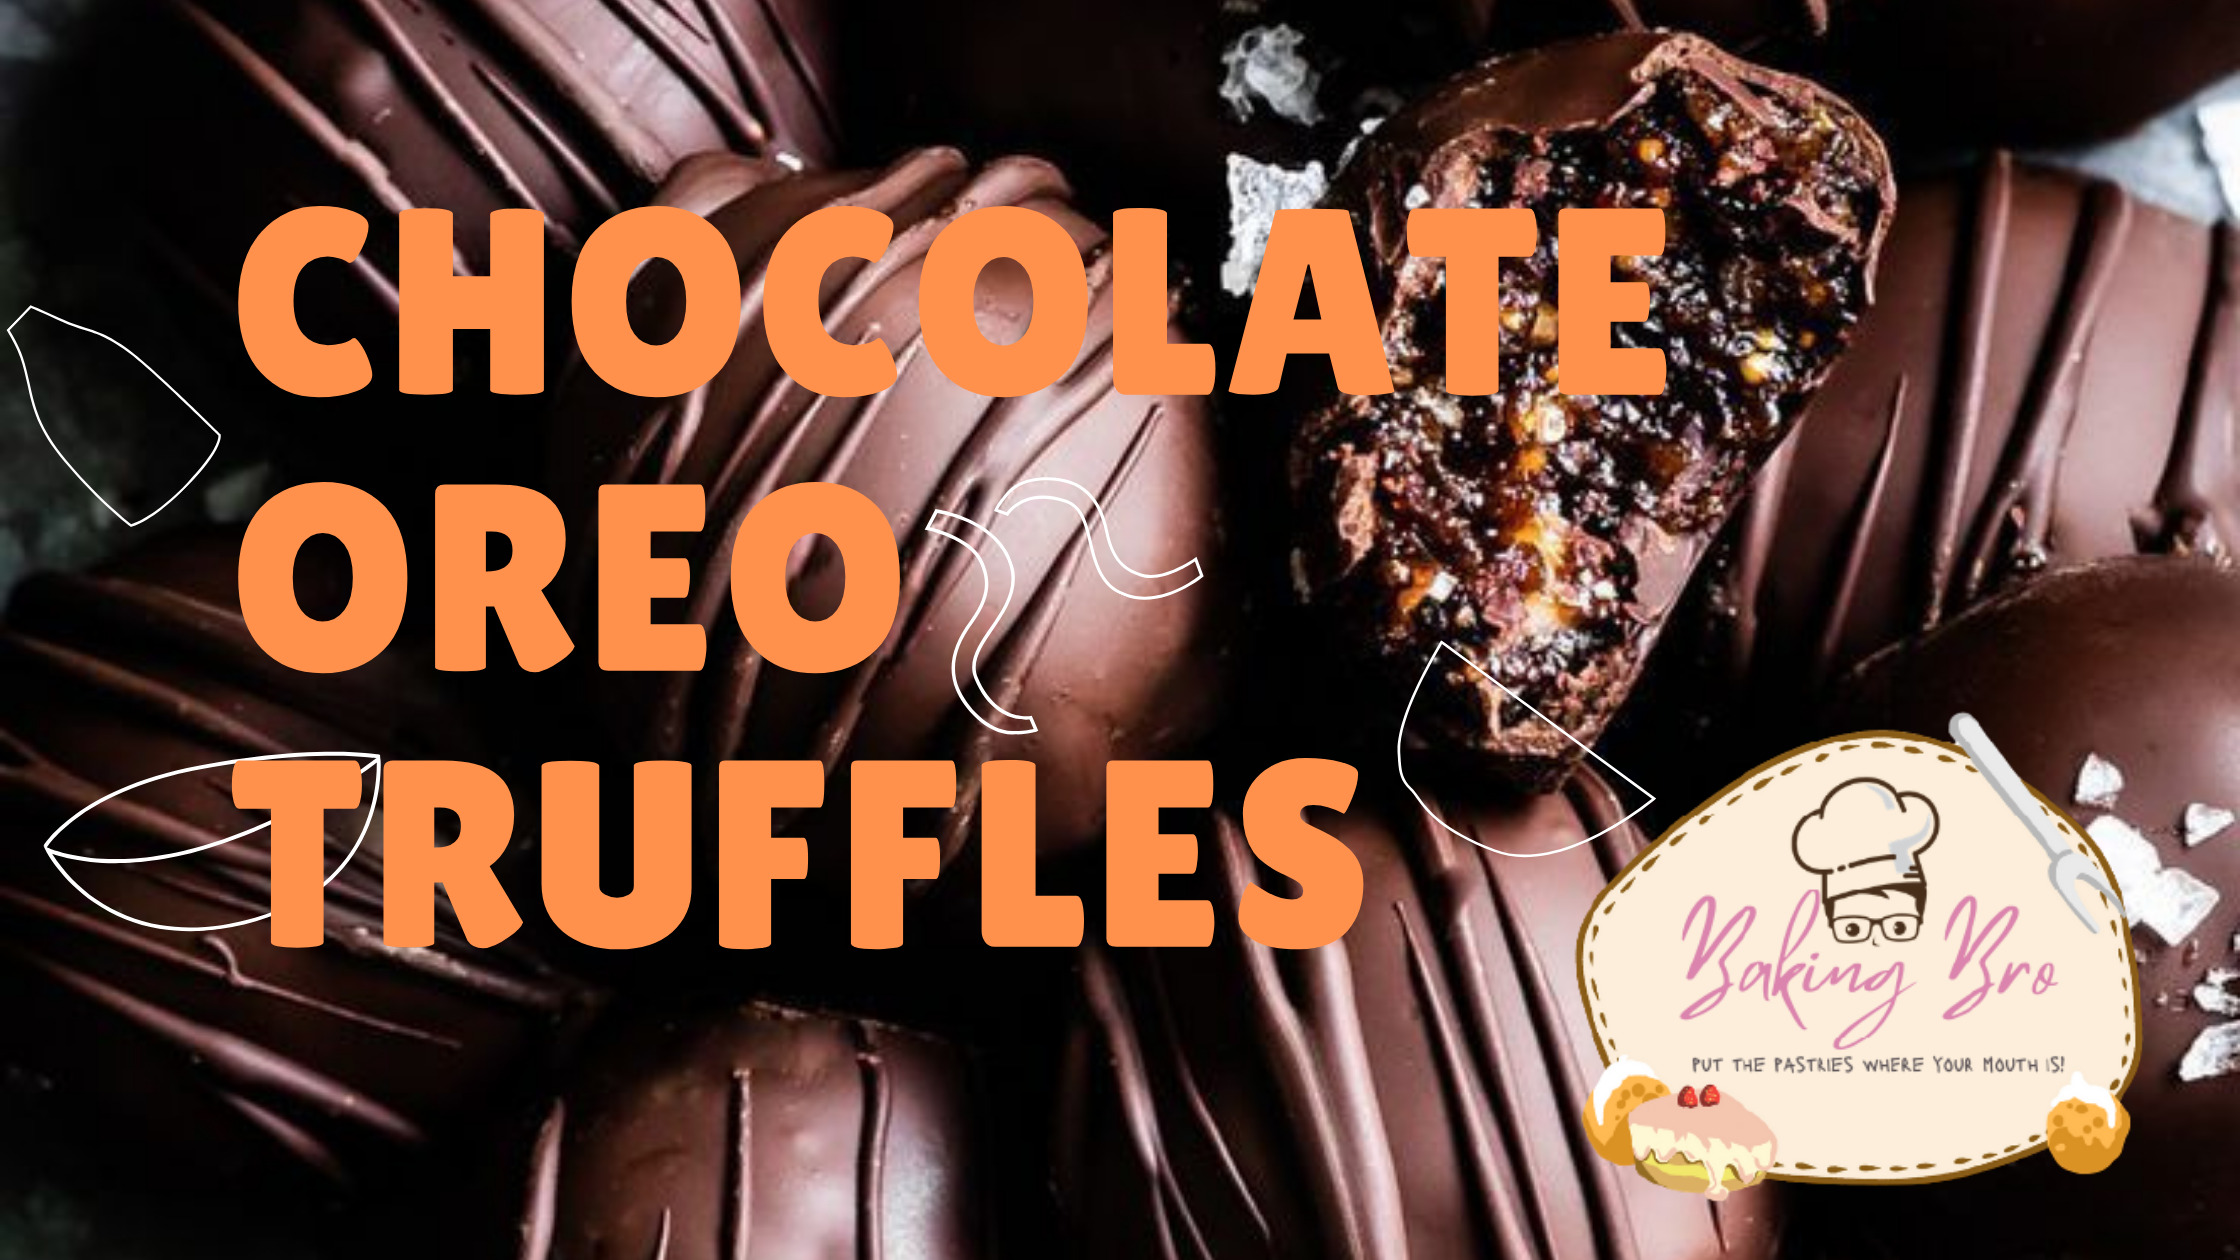 The Best Chocolate Oreo Truffles Recipe